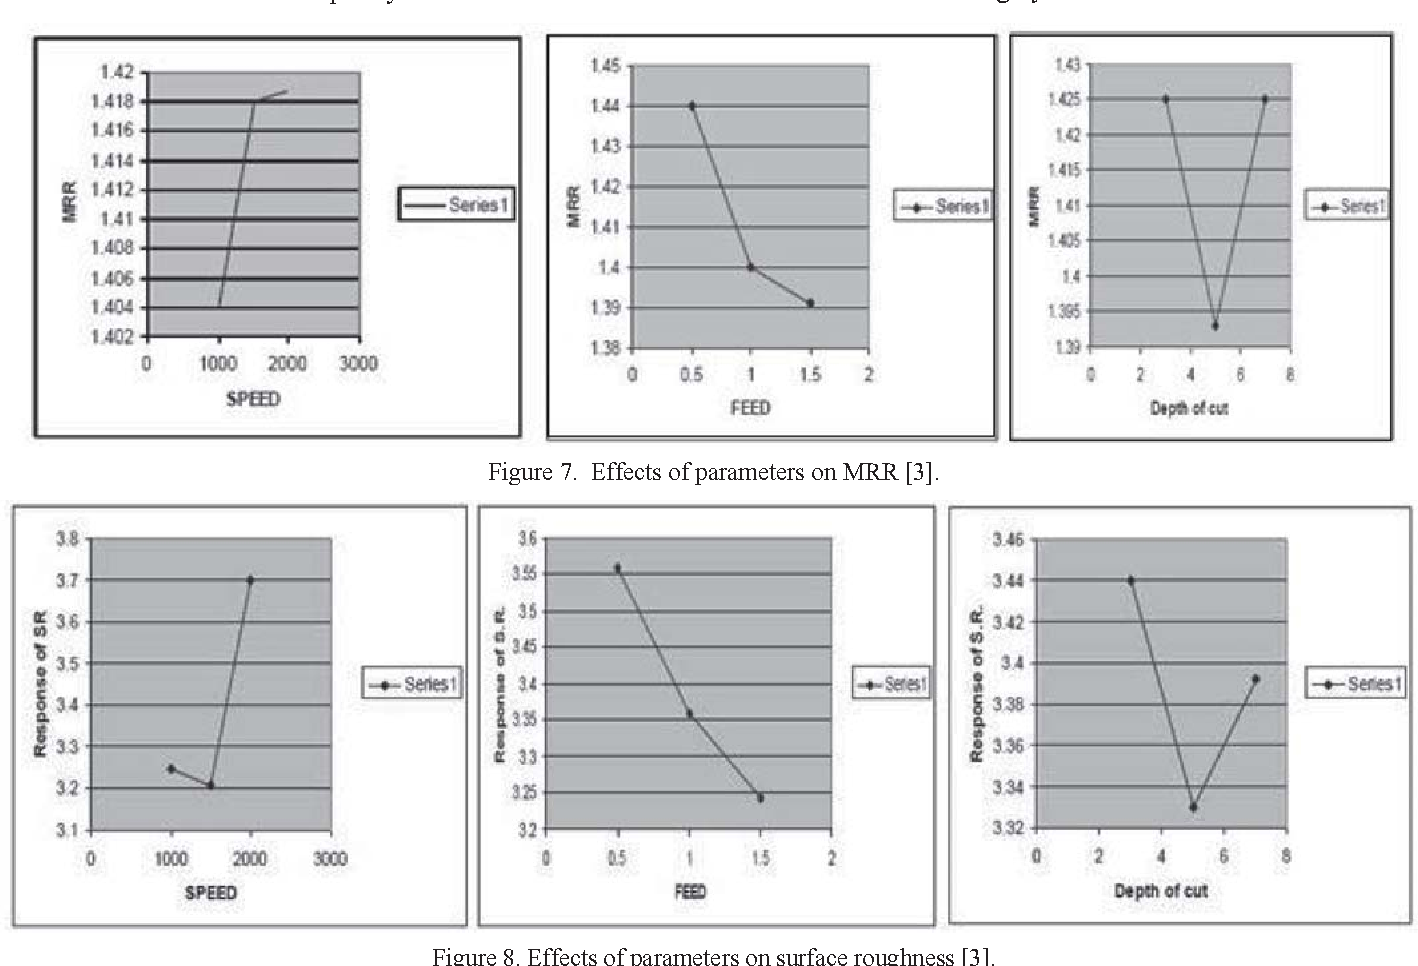 Figure 7. Effects of parameters on MRR [3].